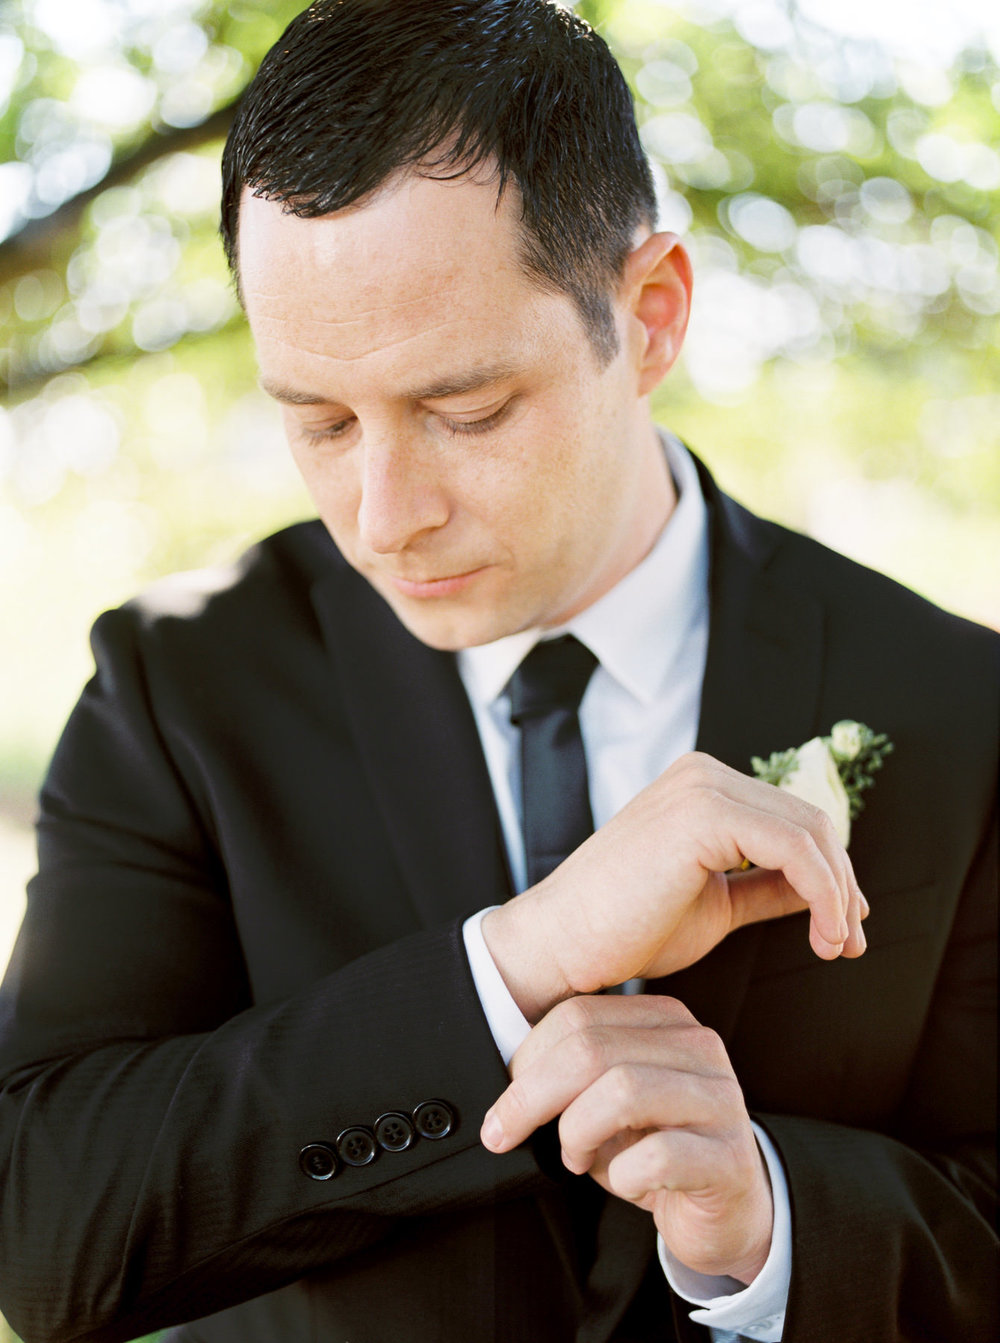 Groom getting ready for wedding